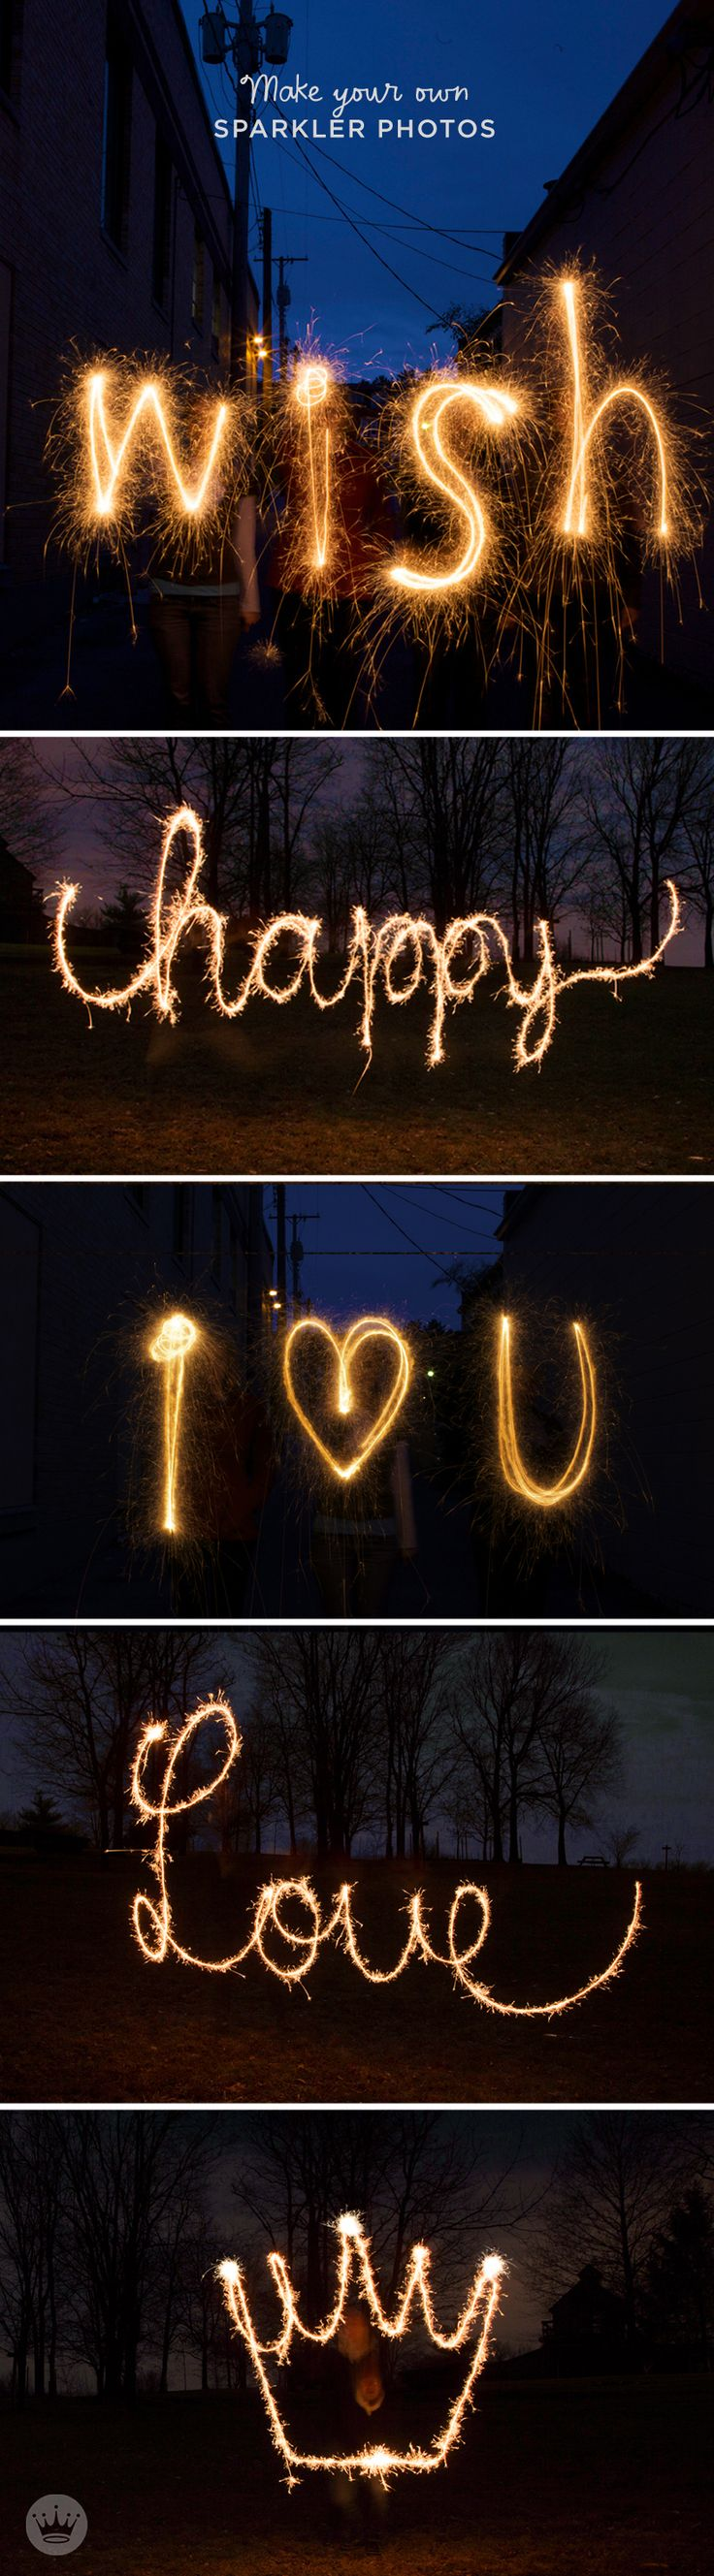 Sparkler Writing Have some fun this Fourth of July with Sparkler Messages! Think.Make.Share, a blog from the Creative Studios at Hallmark, will teach you how to use your cameras to create memorable photographs as you write with sparklers! This is such a